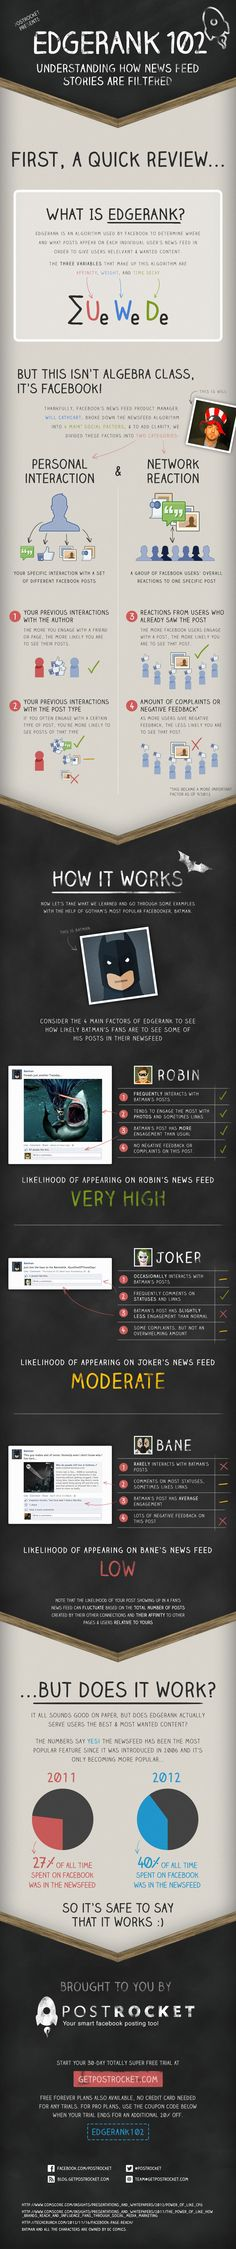 Understanding Facebook's Edgerank & How News Feed Stories Are Filtered